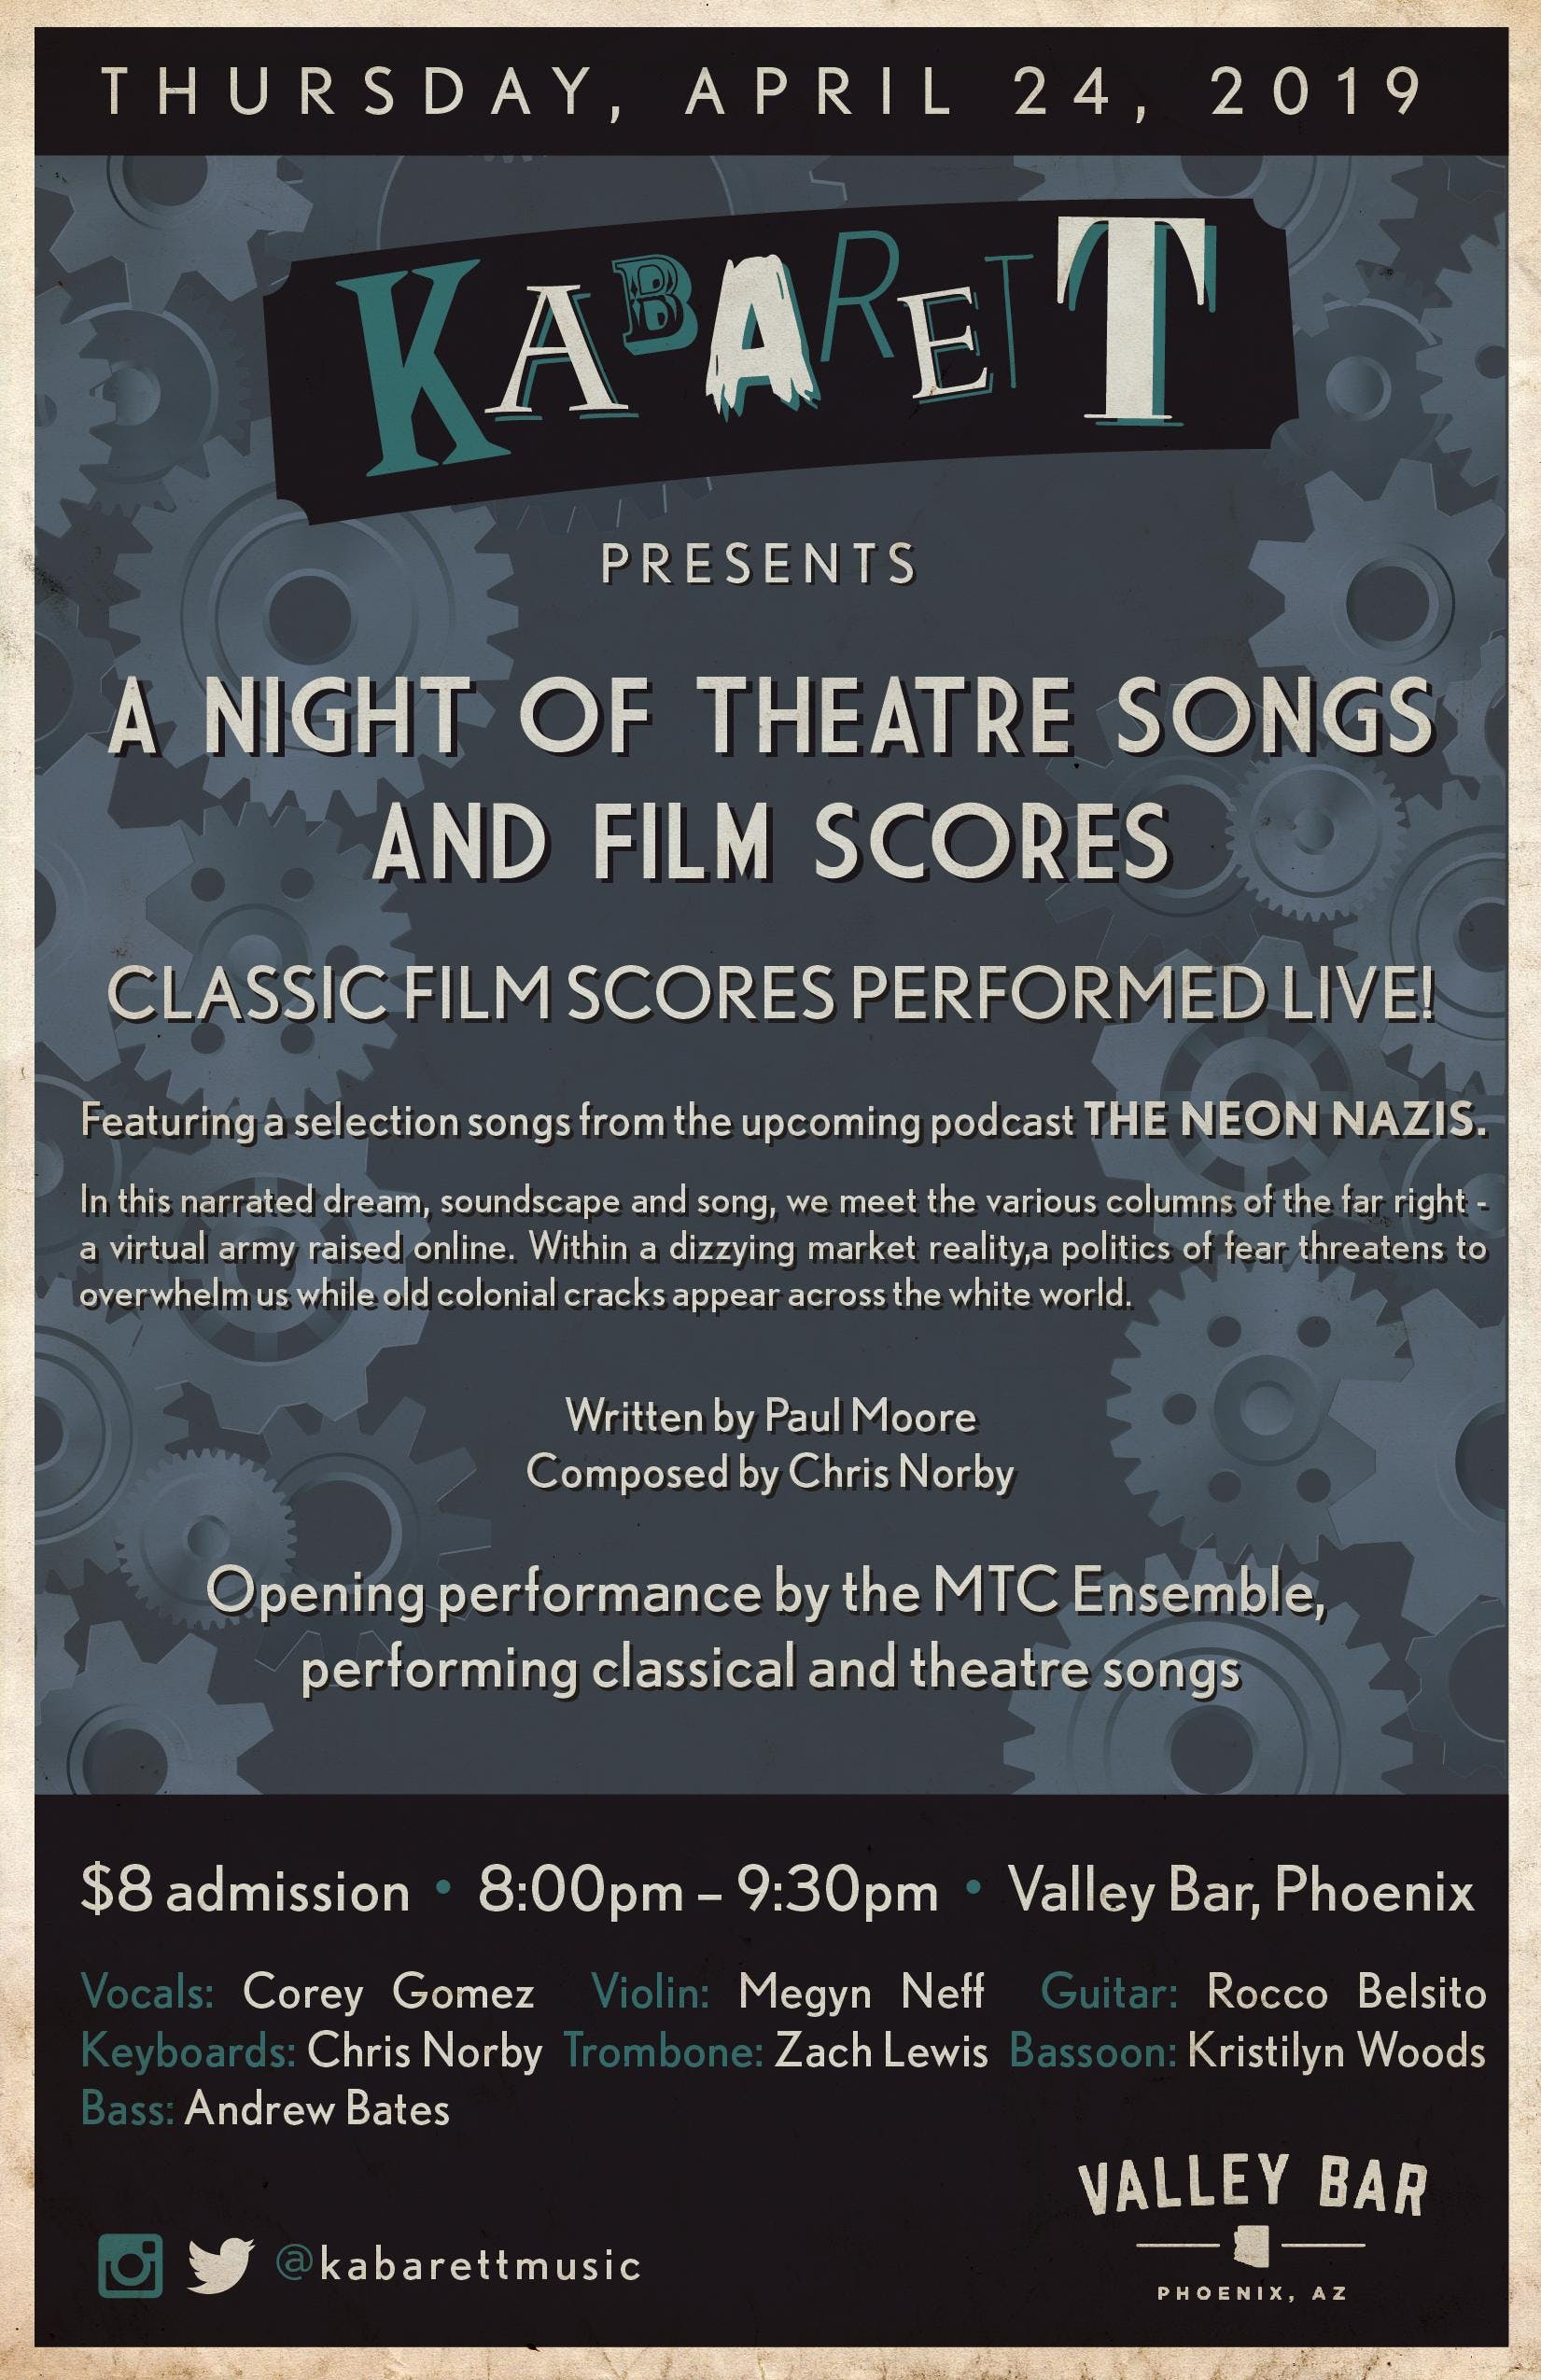 KABARETT: A NIGHT OF THEATRE SONGS AND FILM SCORES